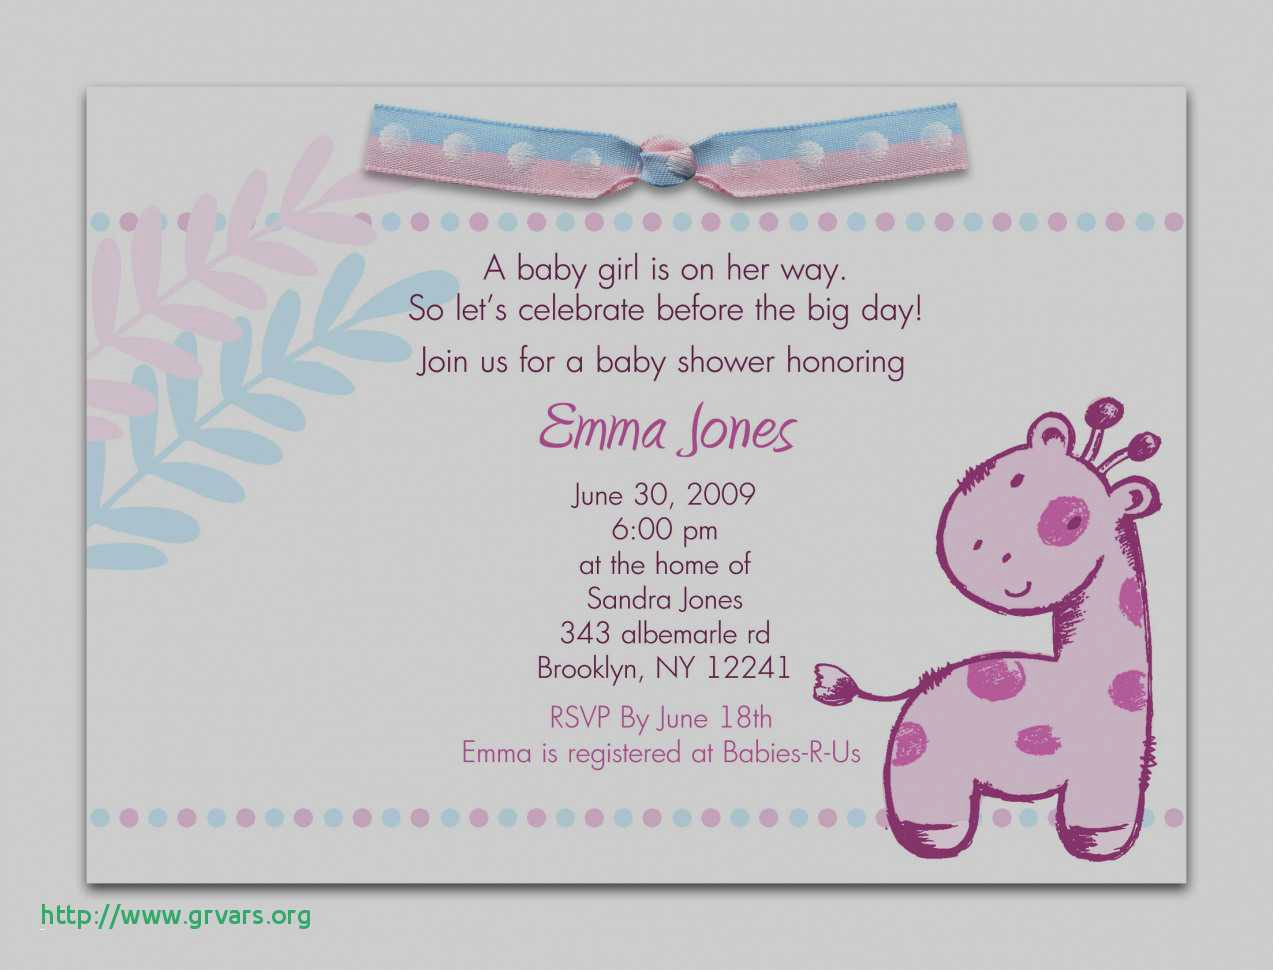 Surprise Baby Shower Invitation Wording Awesome Christian Baby Shower Invitations